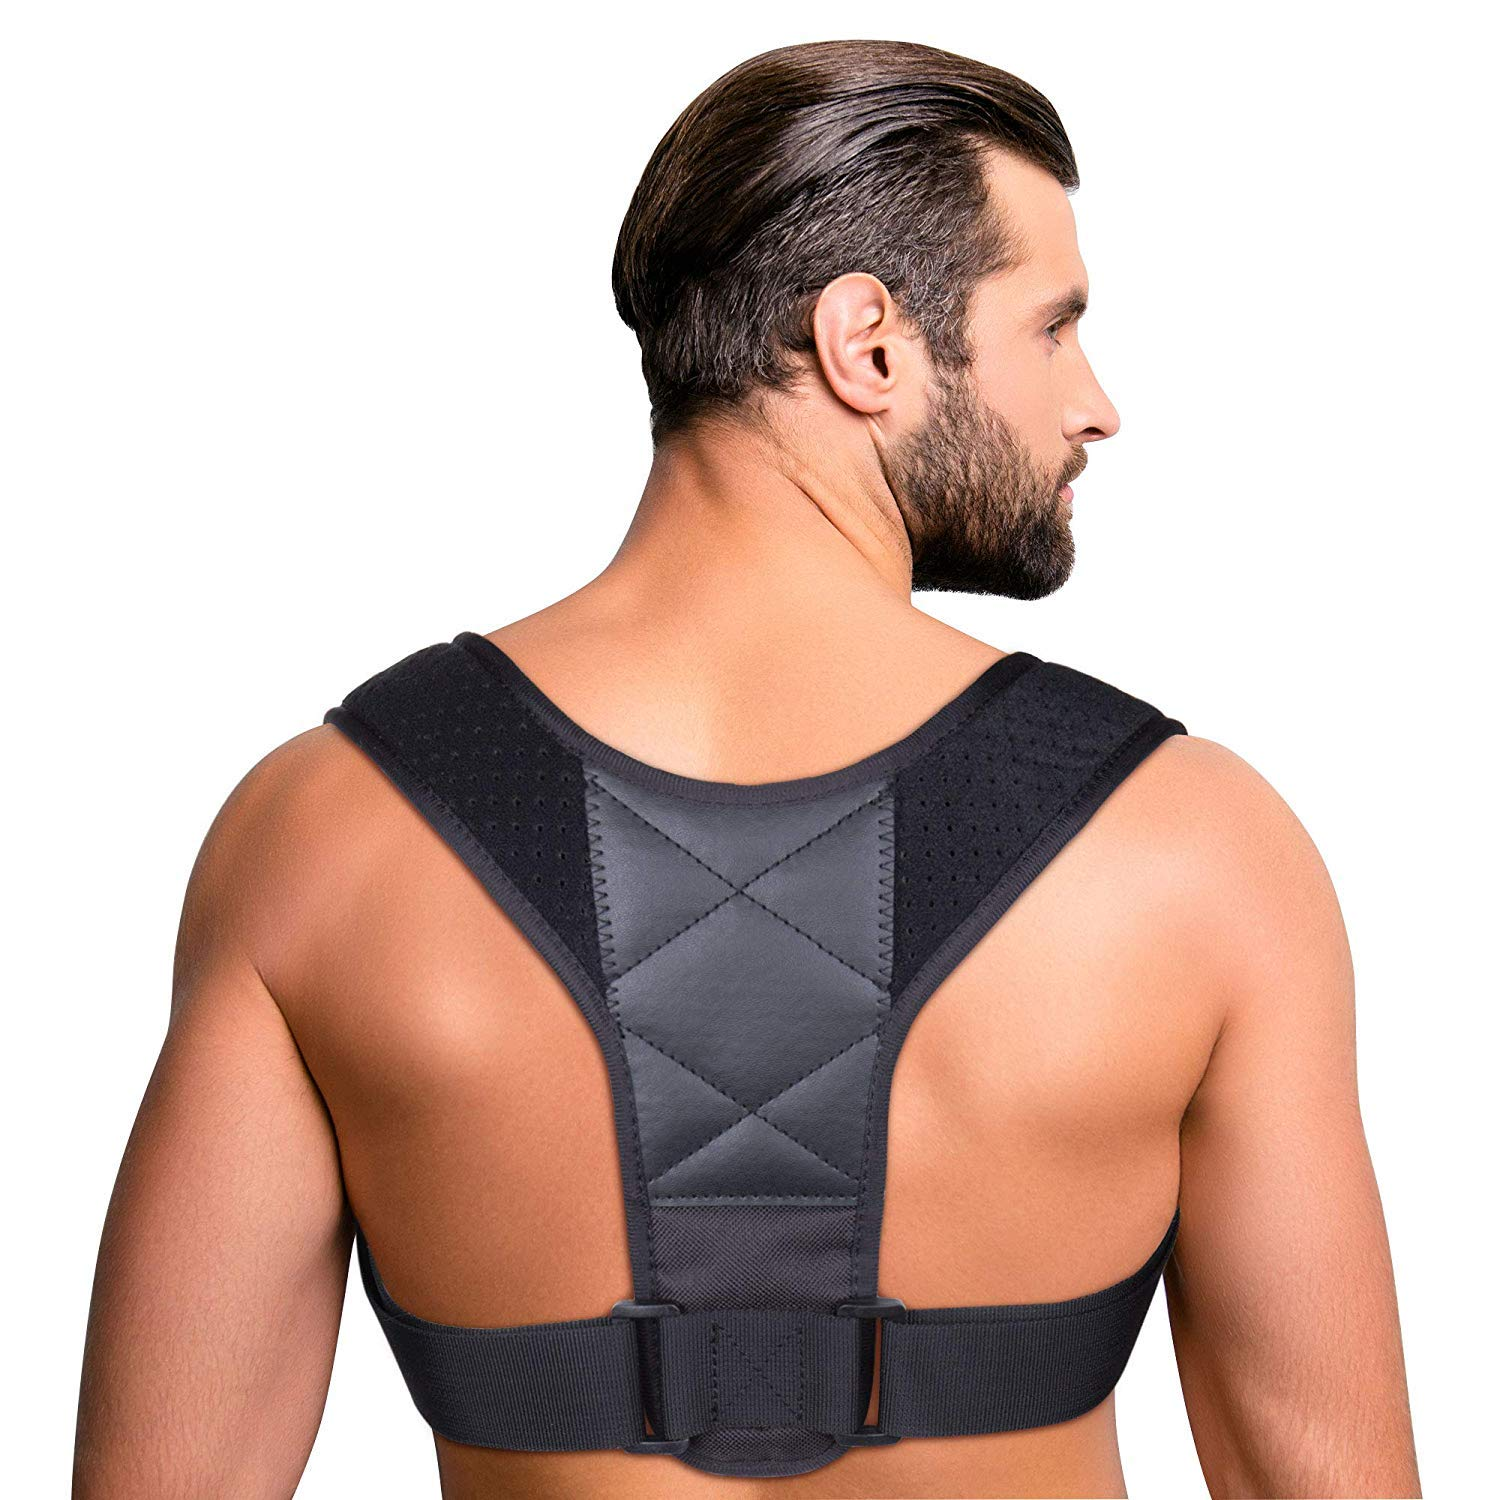 Aroamas Posture Corrector for Women & Men, Relieves Upper Back & Shoulders Pain, Corrects Slouching, Hunching & Bad Posture, Clavicle Support Adjustable Brace (Leather) by Aroamas